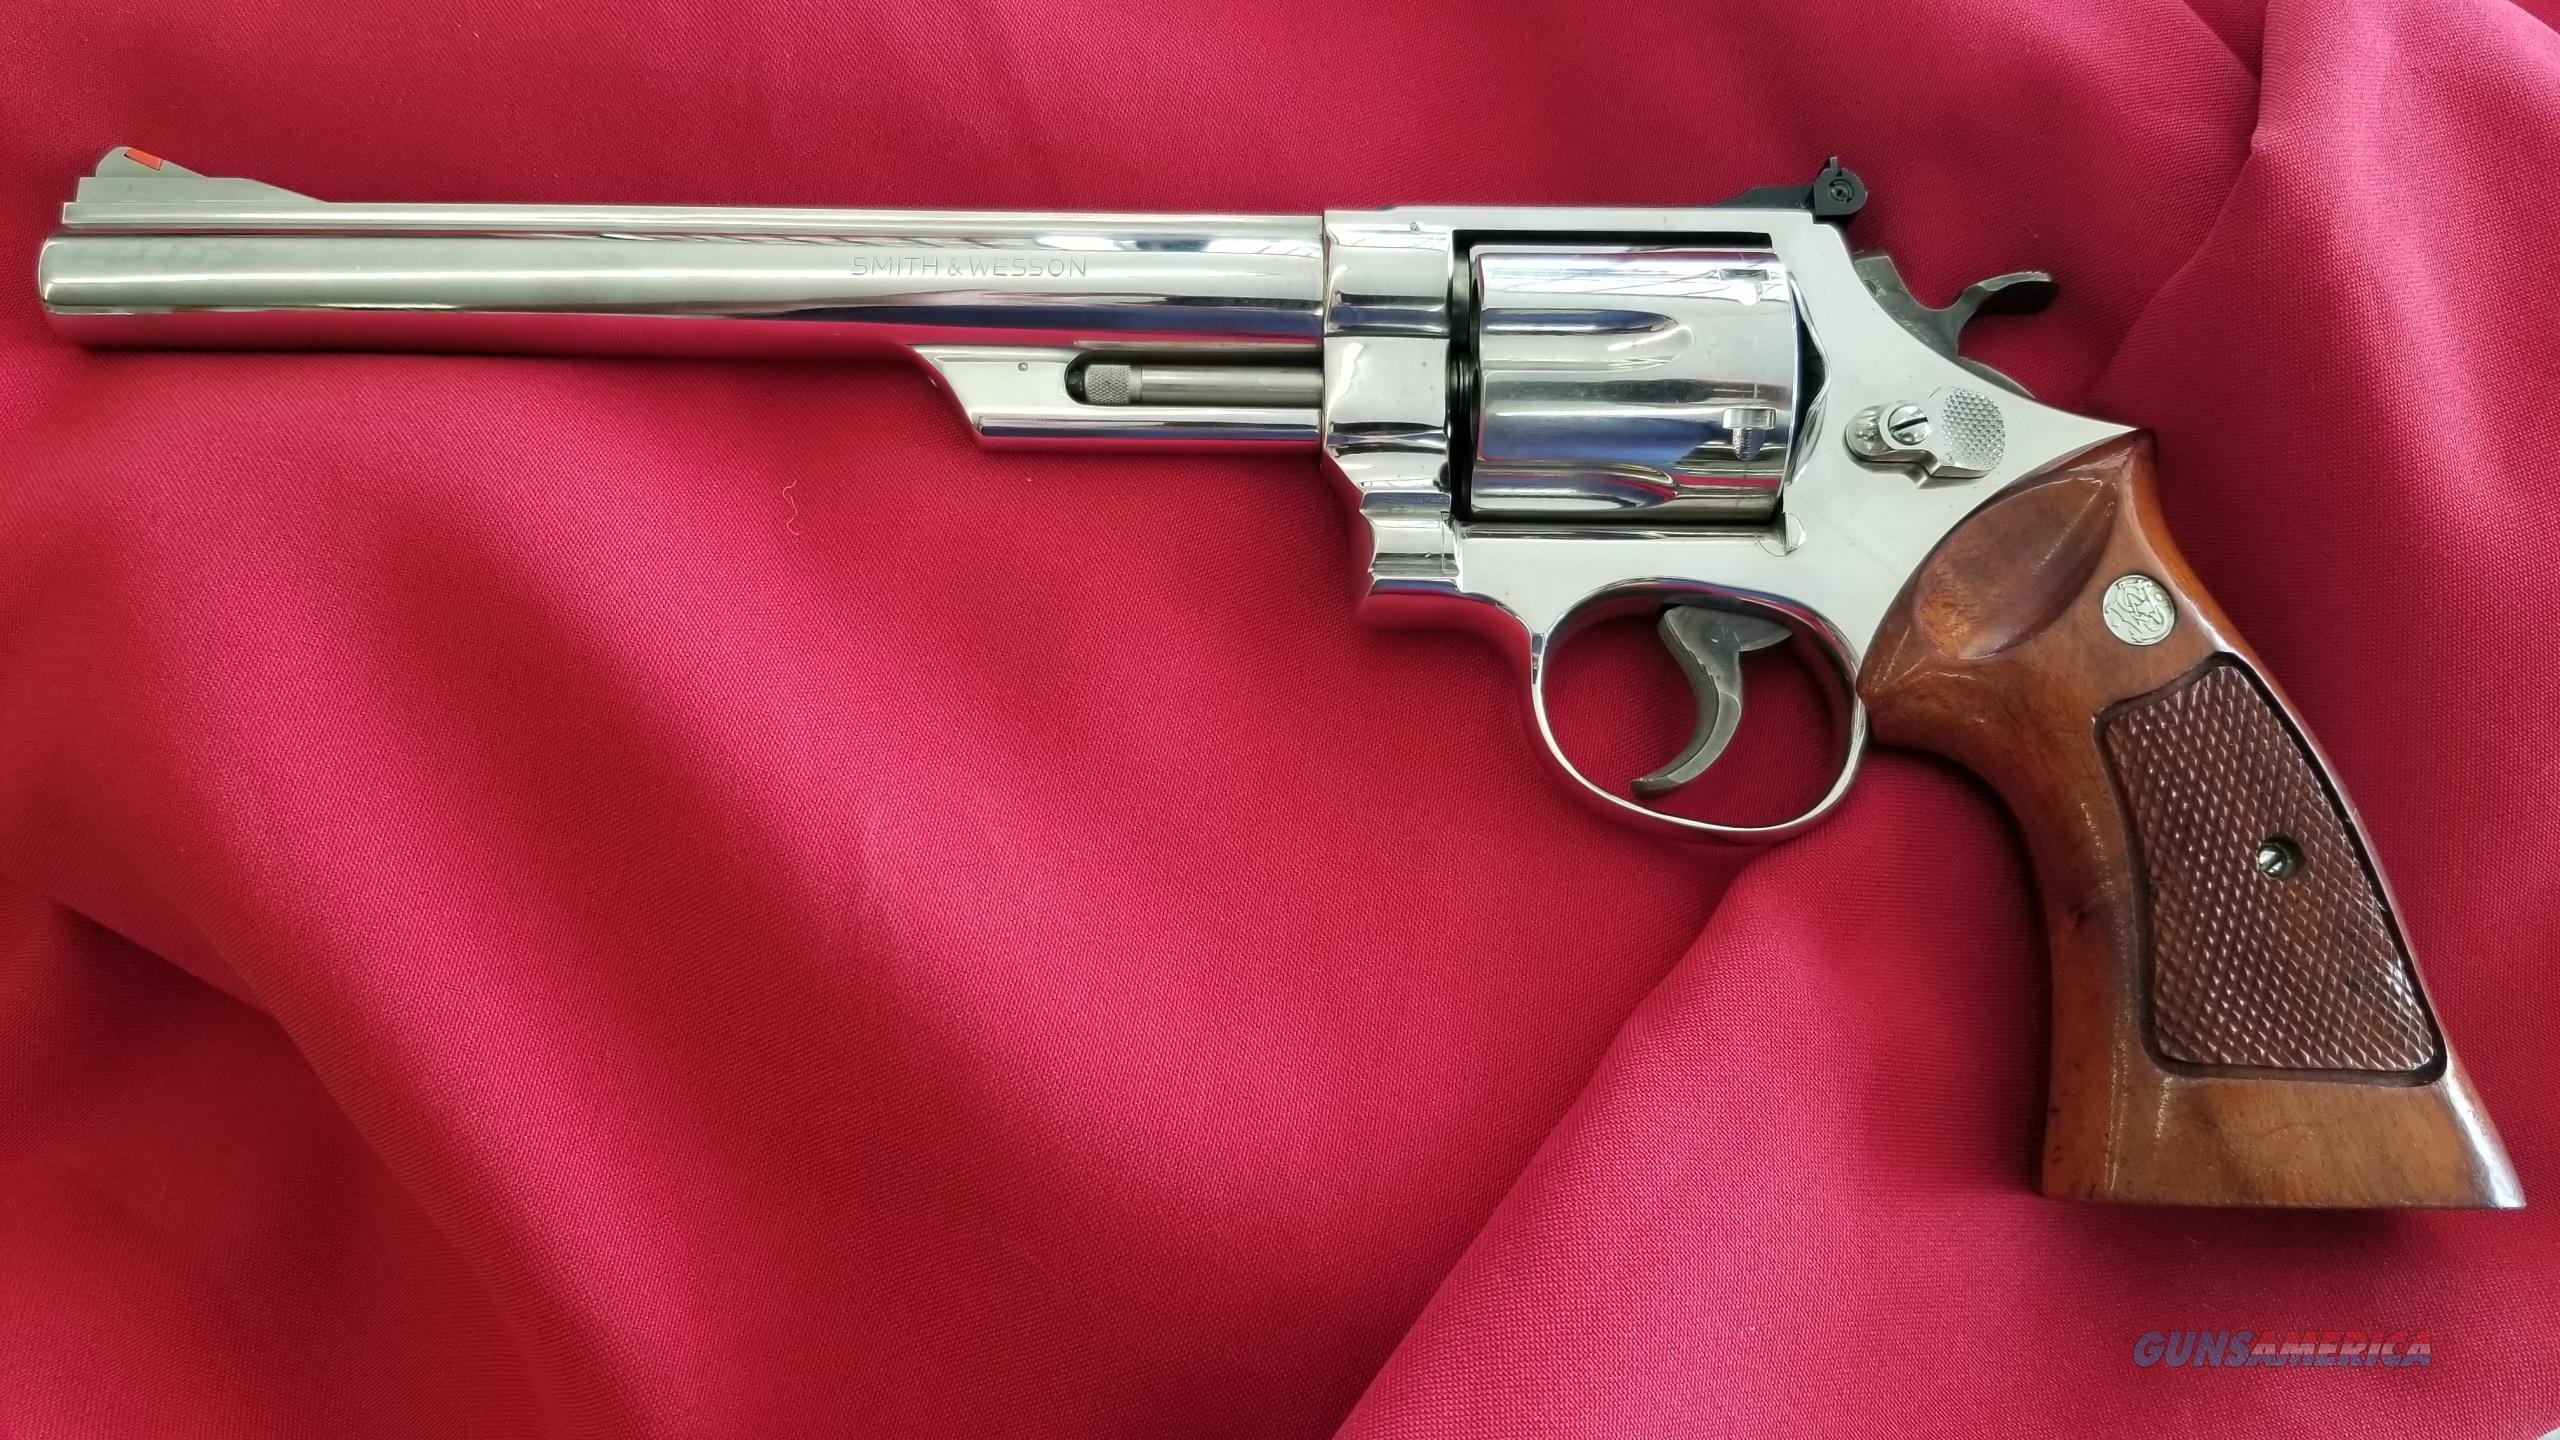 """Pre Owned Smith & Wesson 29-2 .44 Mag in Nickle, and 8 3/8"""" Barrel  Guns > Pistols > Smith & Wesson Revolvers > Full Frame Revolver"""